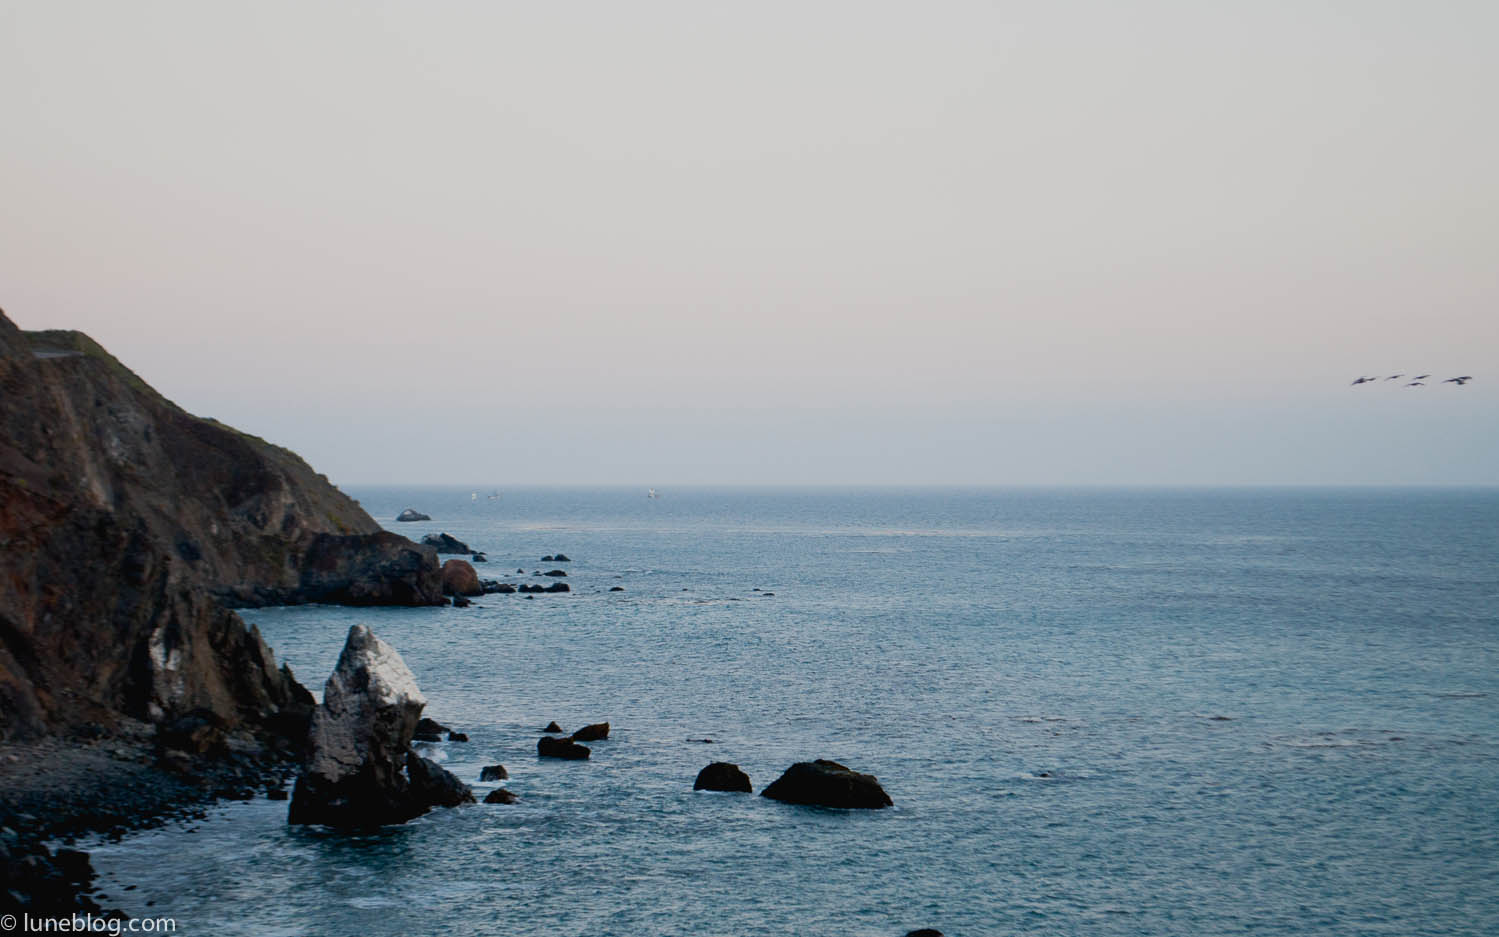 big sur lune travel blog (34 of 37).jpg